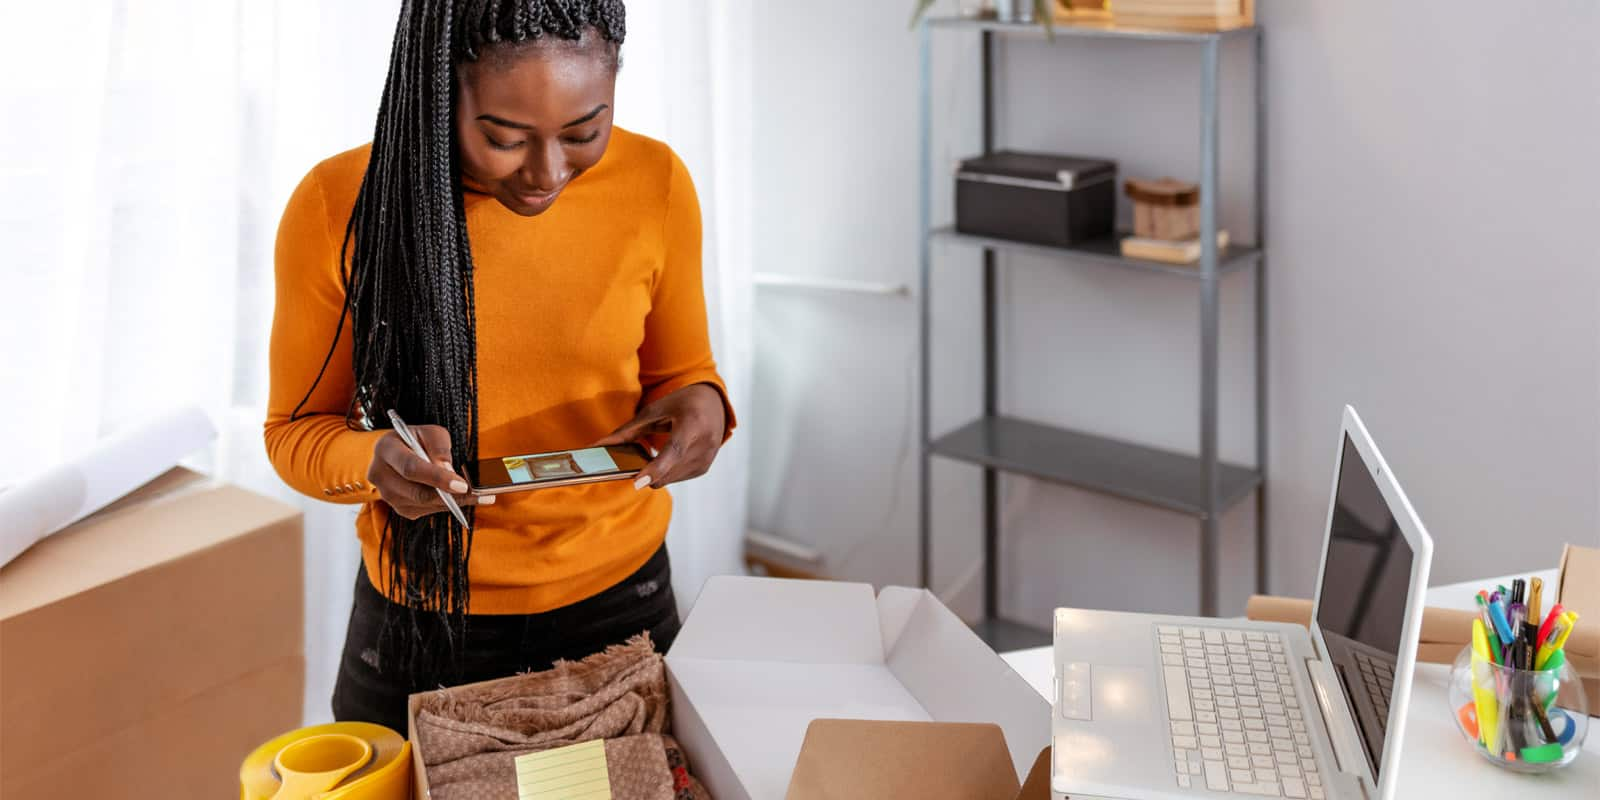 Female business owner taking photo of shipping box content